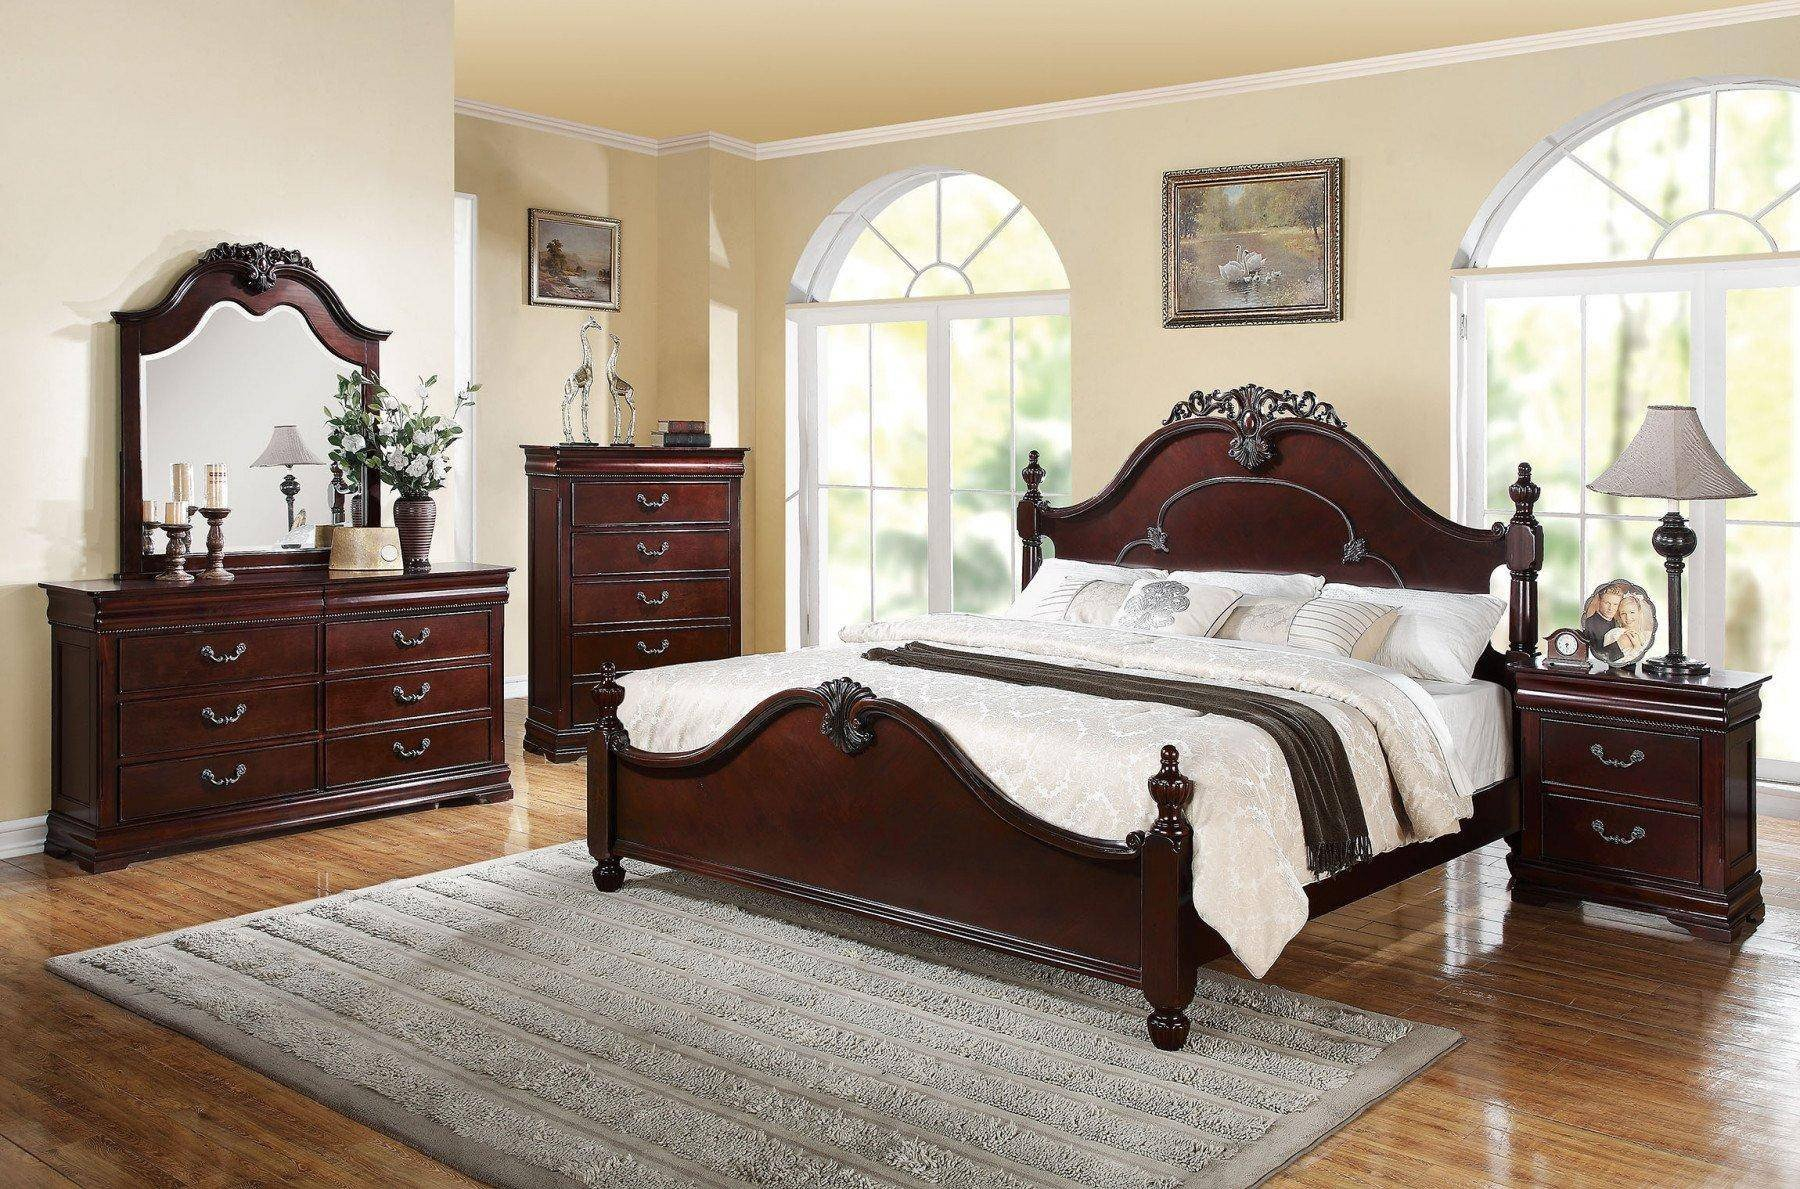 Acme Furniture Bedroom Set Beautiful Cherry Poster King Bedroom Set 5 Pcs Acme Furniture Ek